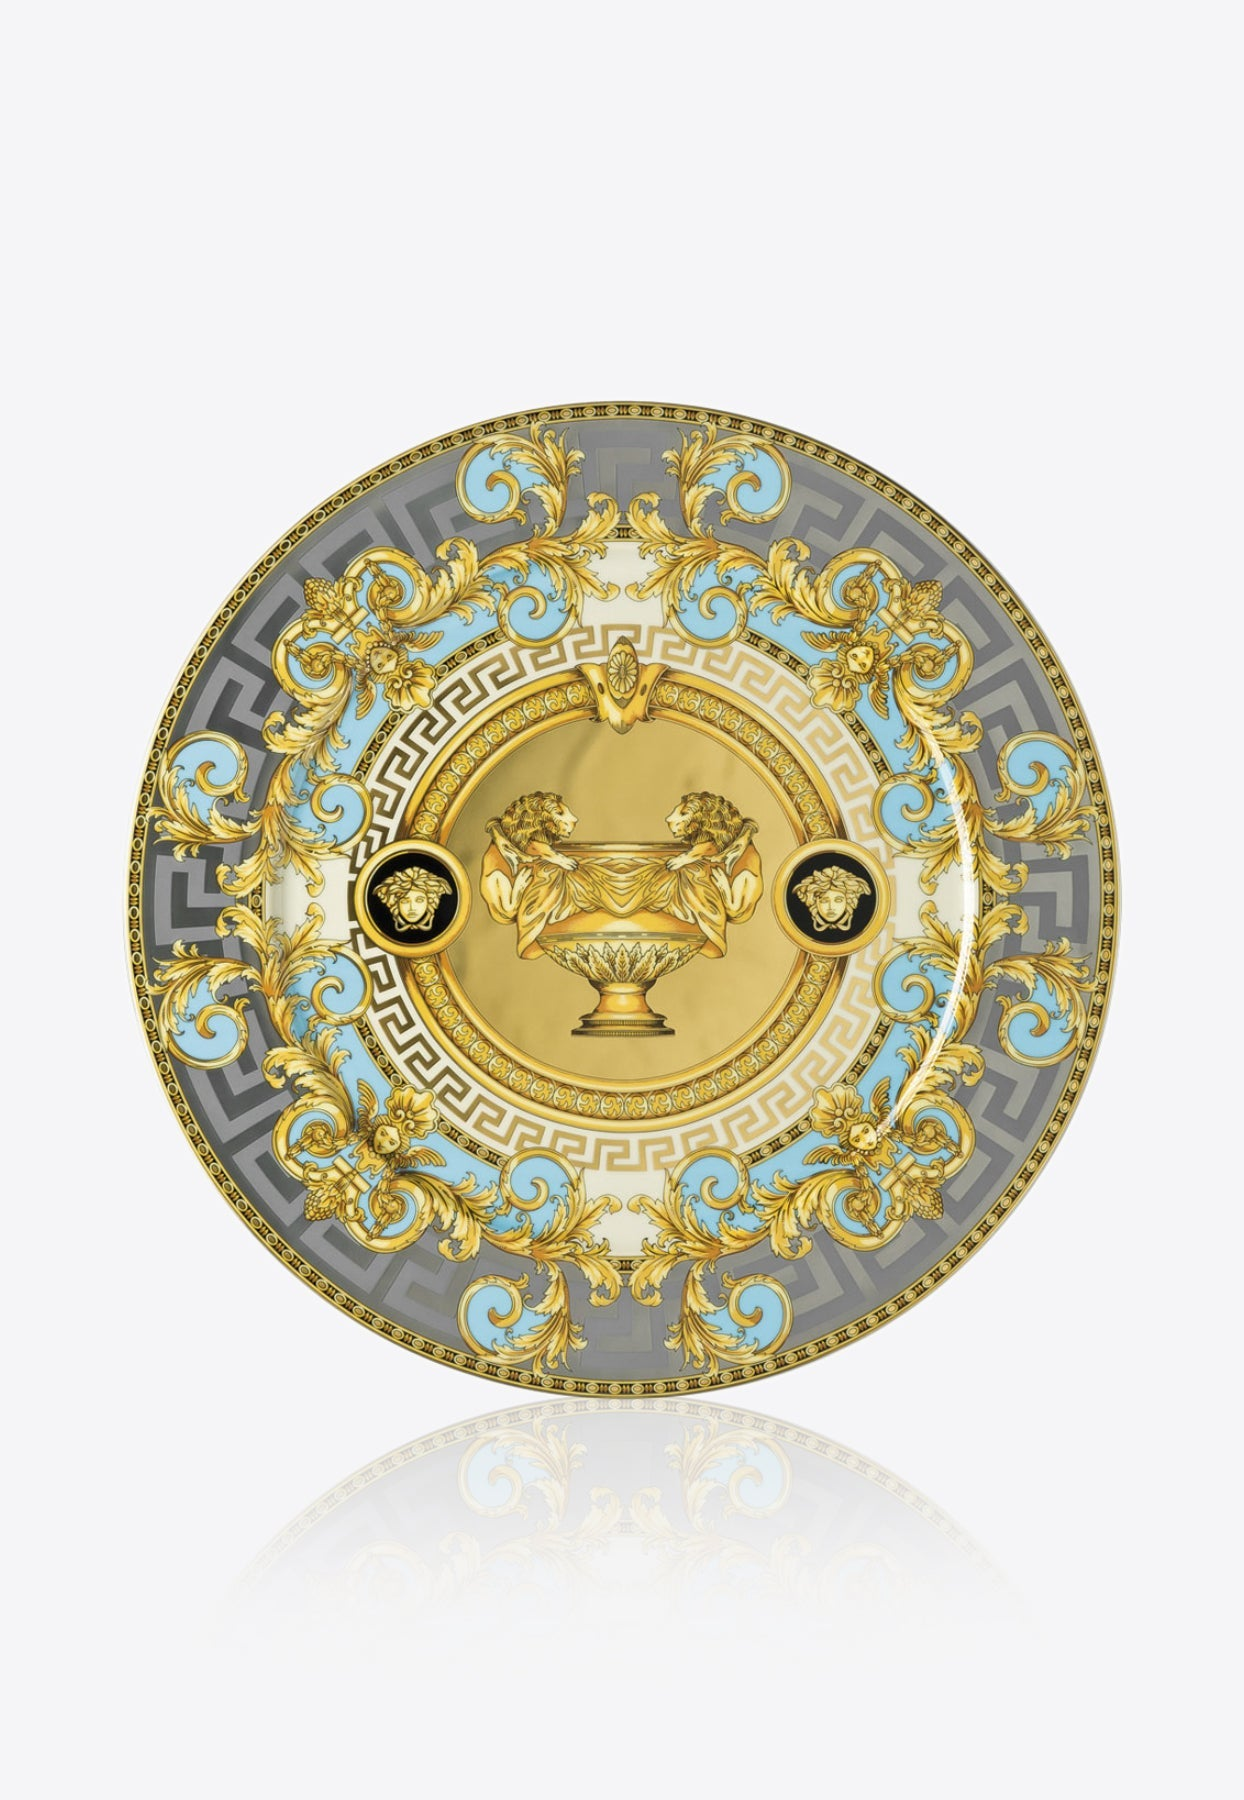 Versace Home Collection Prestige Gala Service Plate In Blue